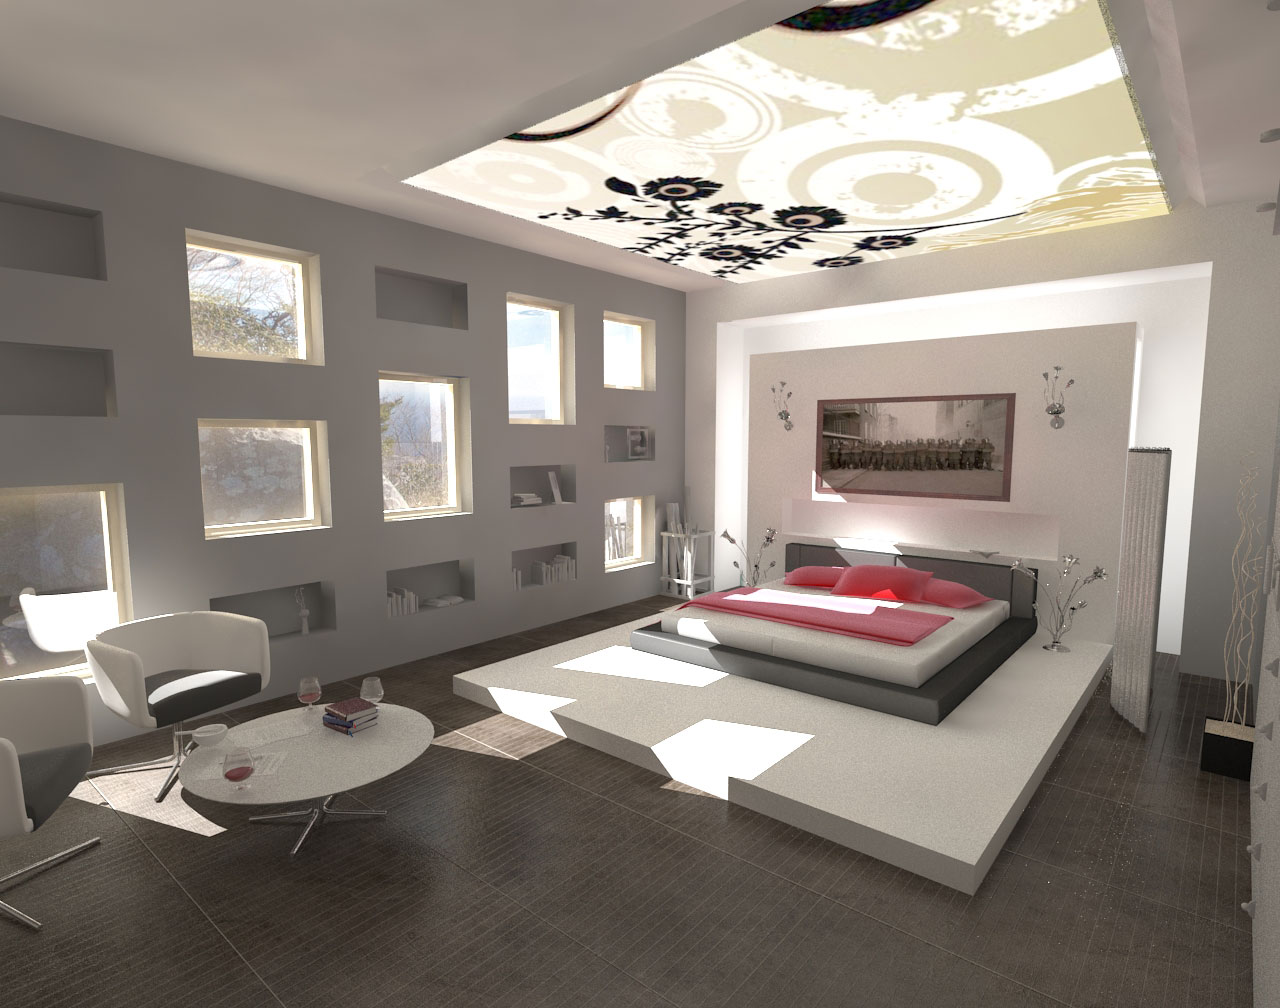 ... Design - Modern Bedroom Interior Design Ideas, 1280x1008 in 183.1KB